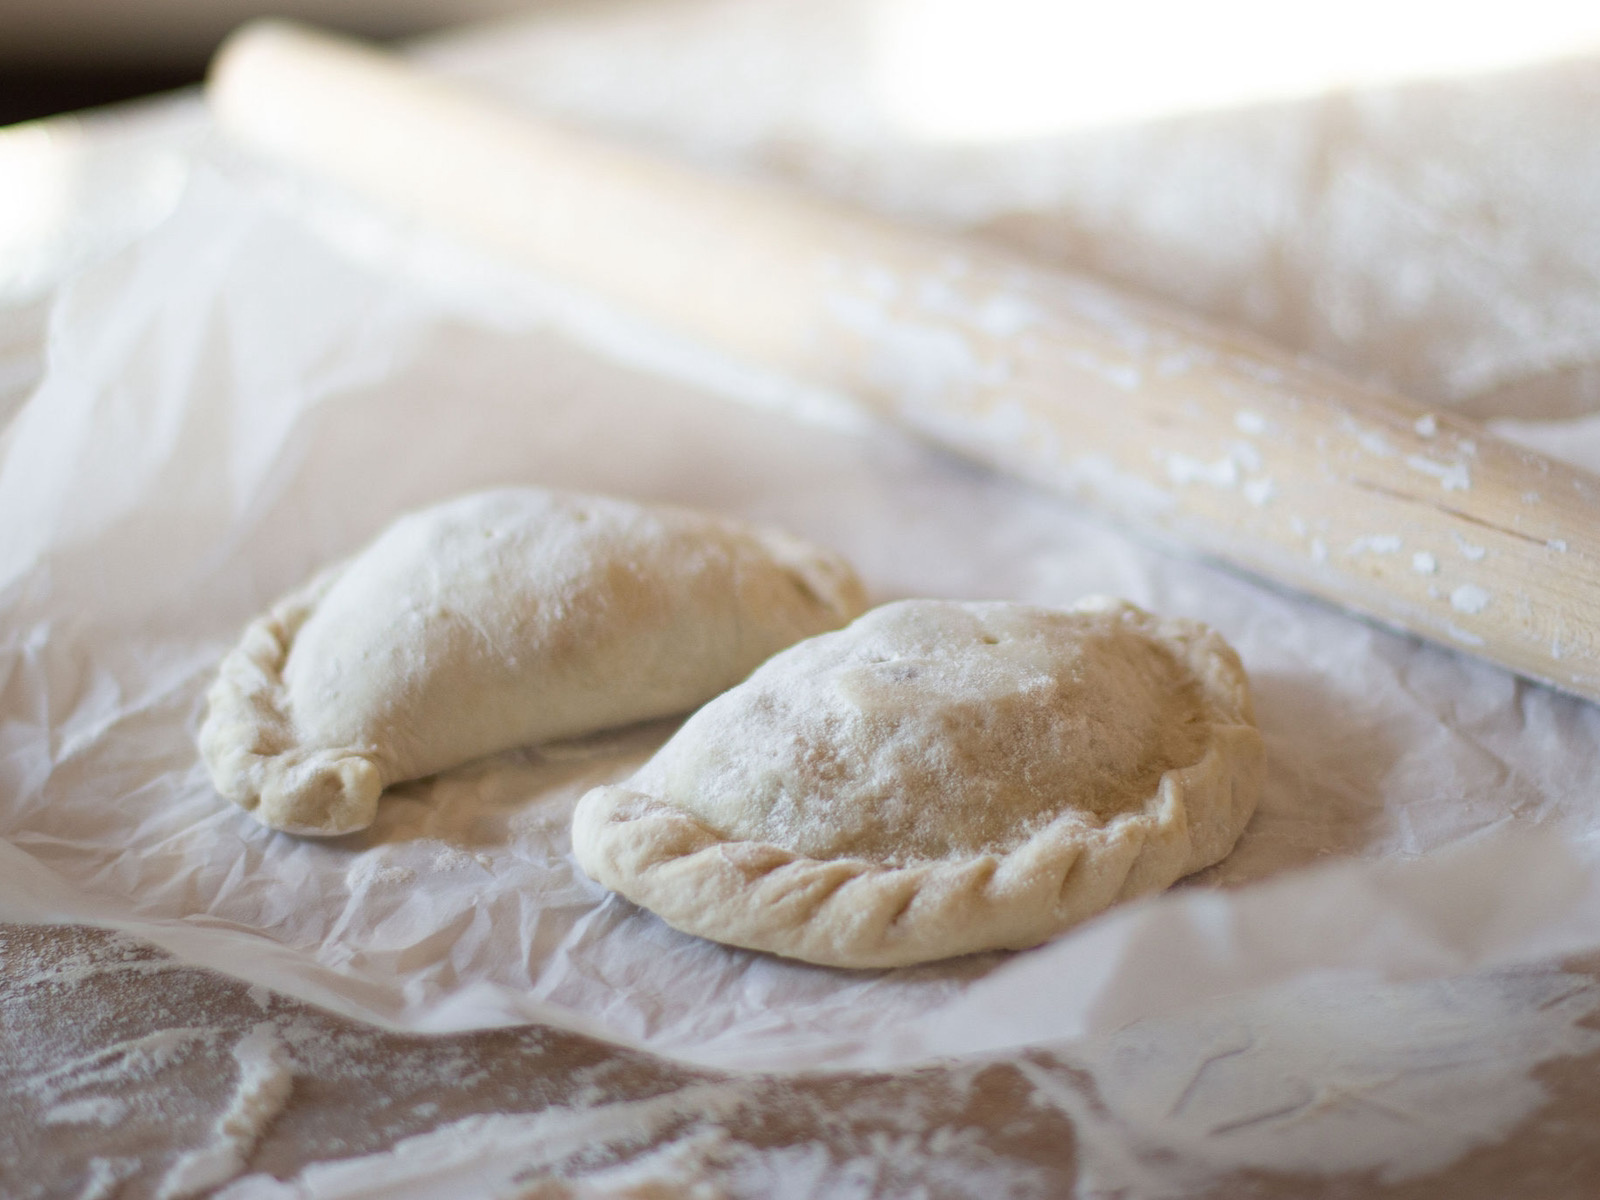 Calzones in flour with rolling pin